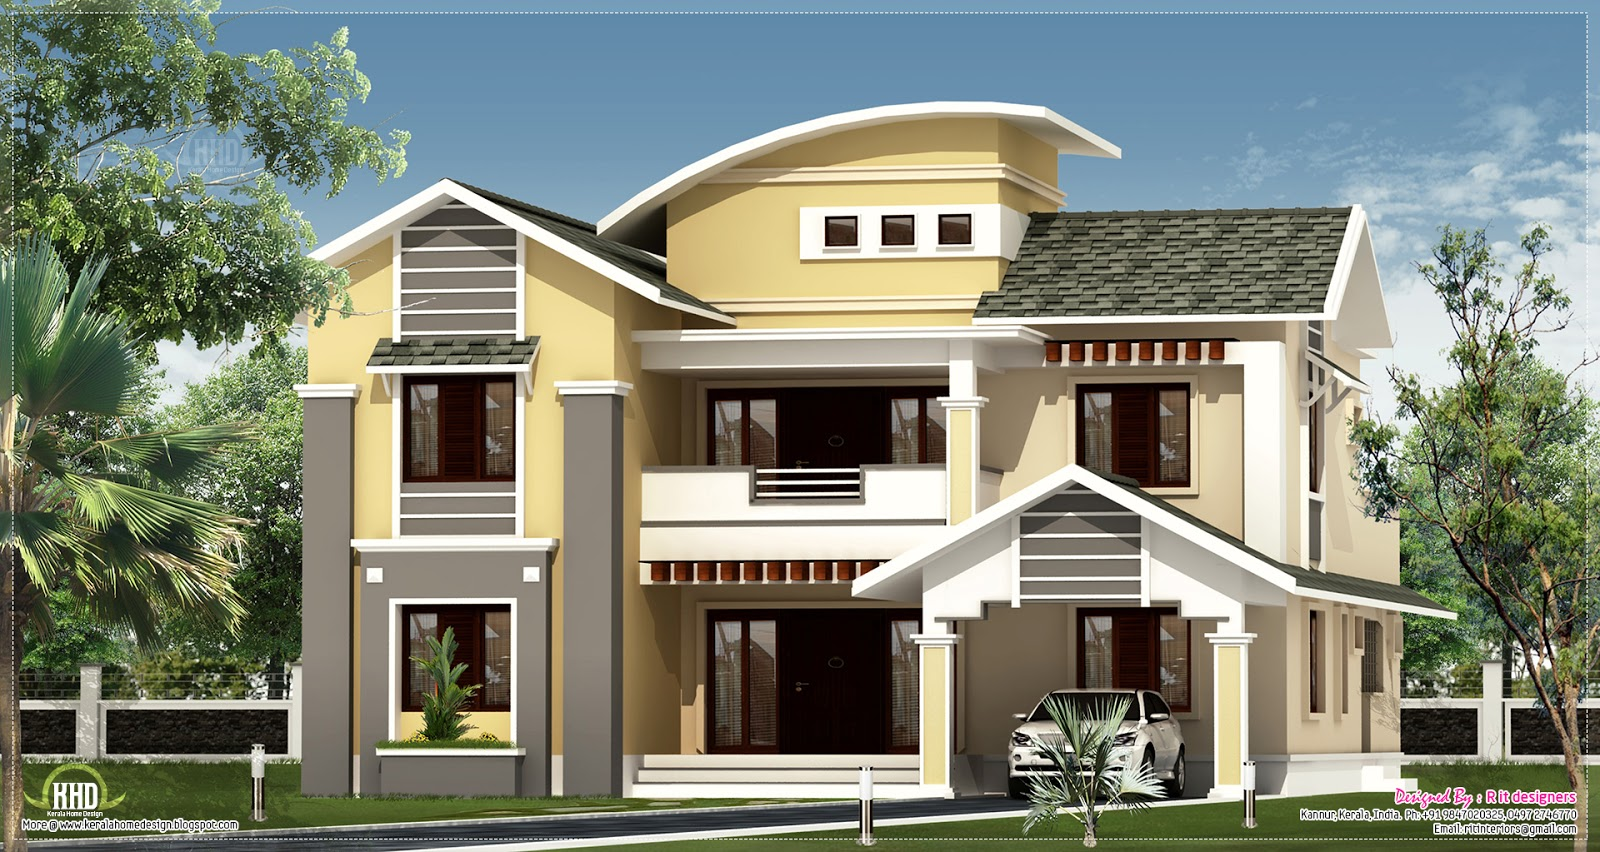 3000 home design from kannur kerala kerala home - Home design at sq ...